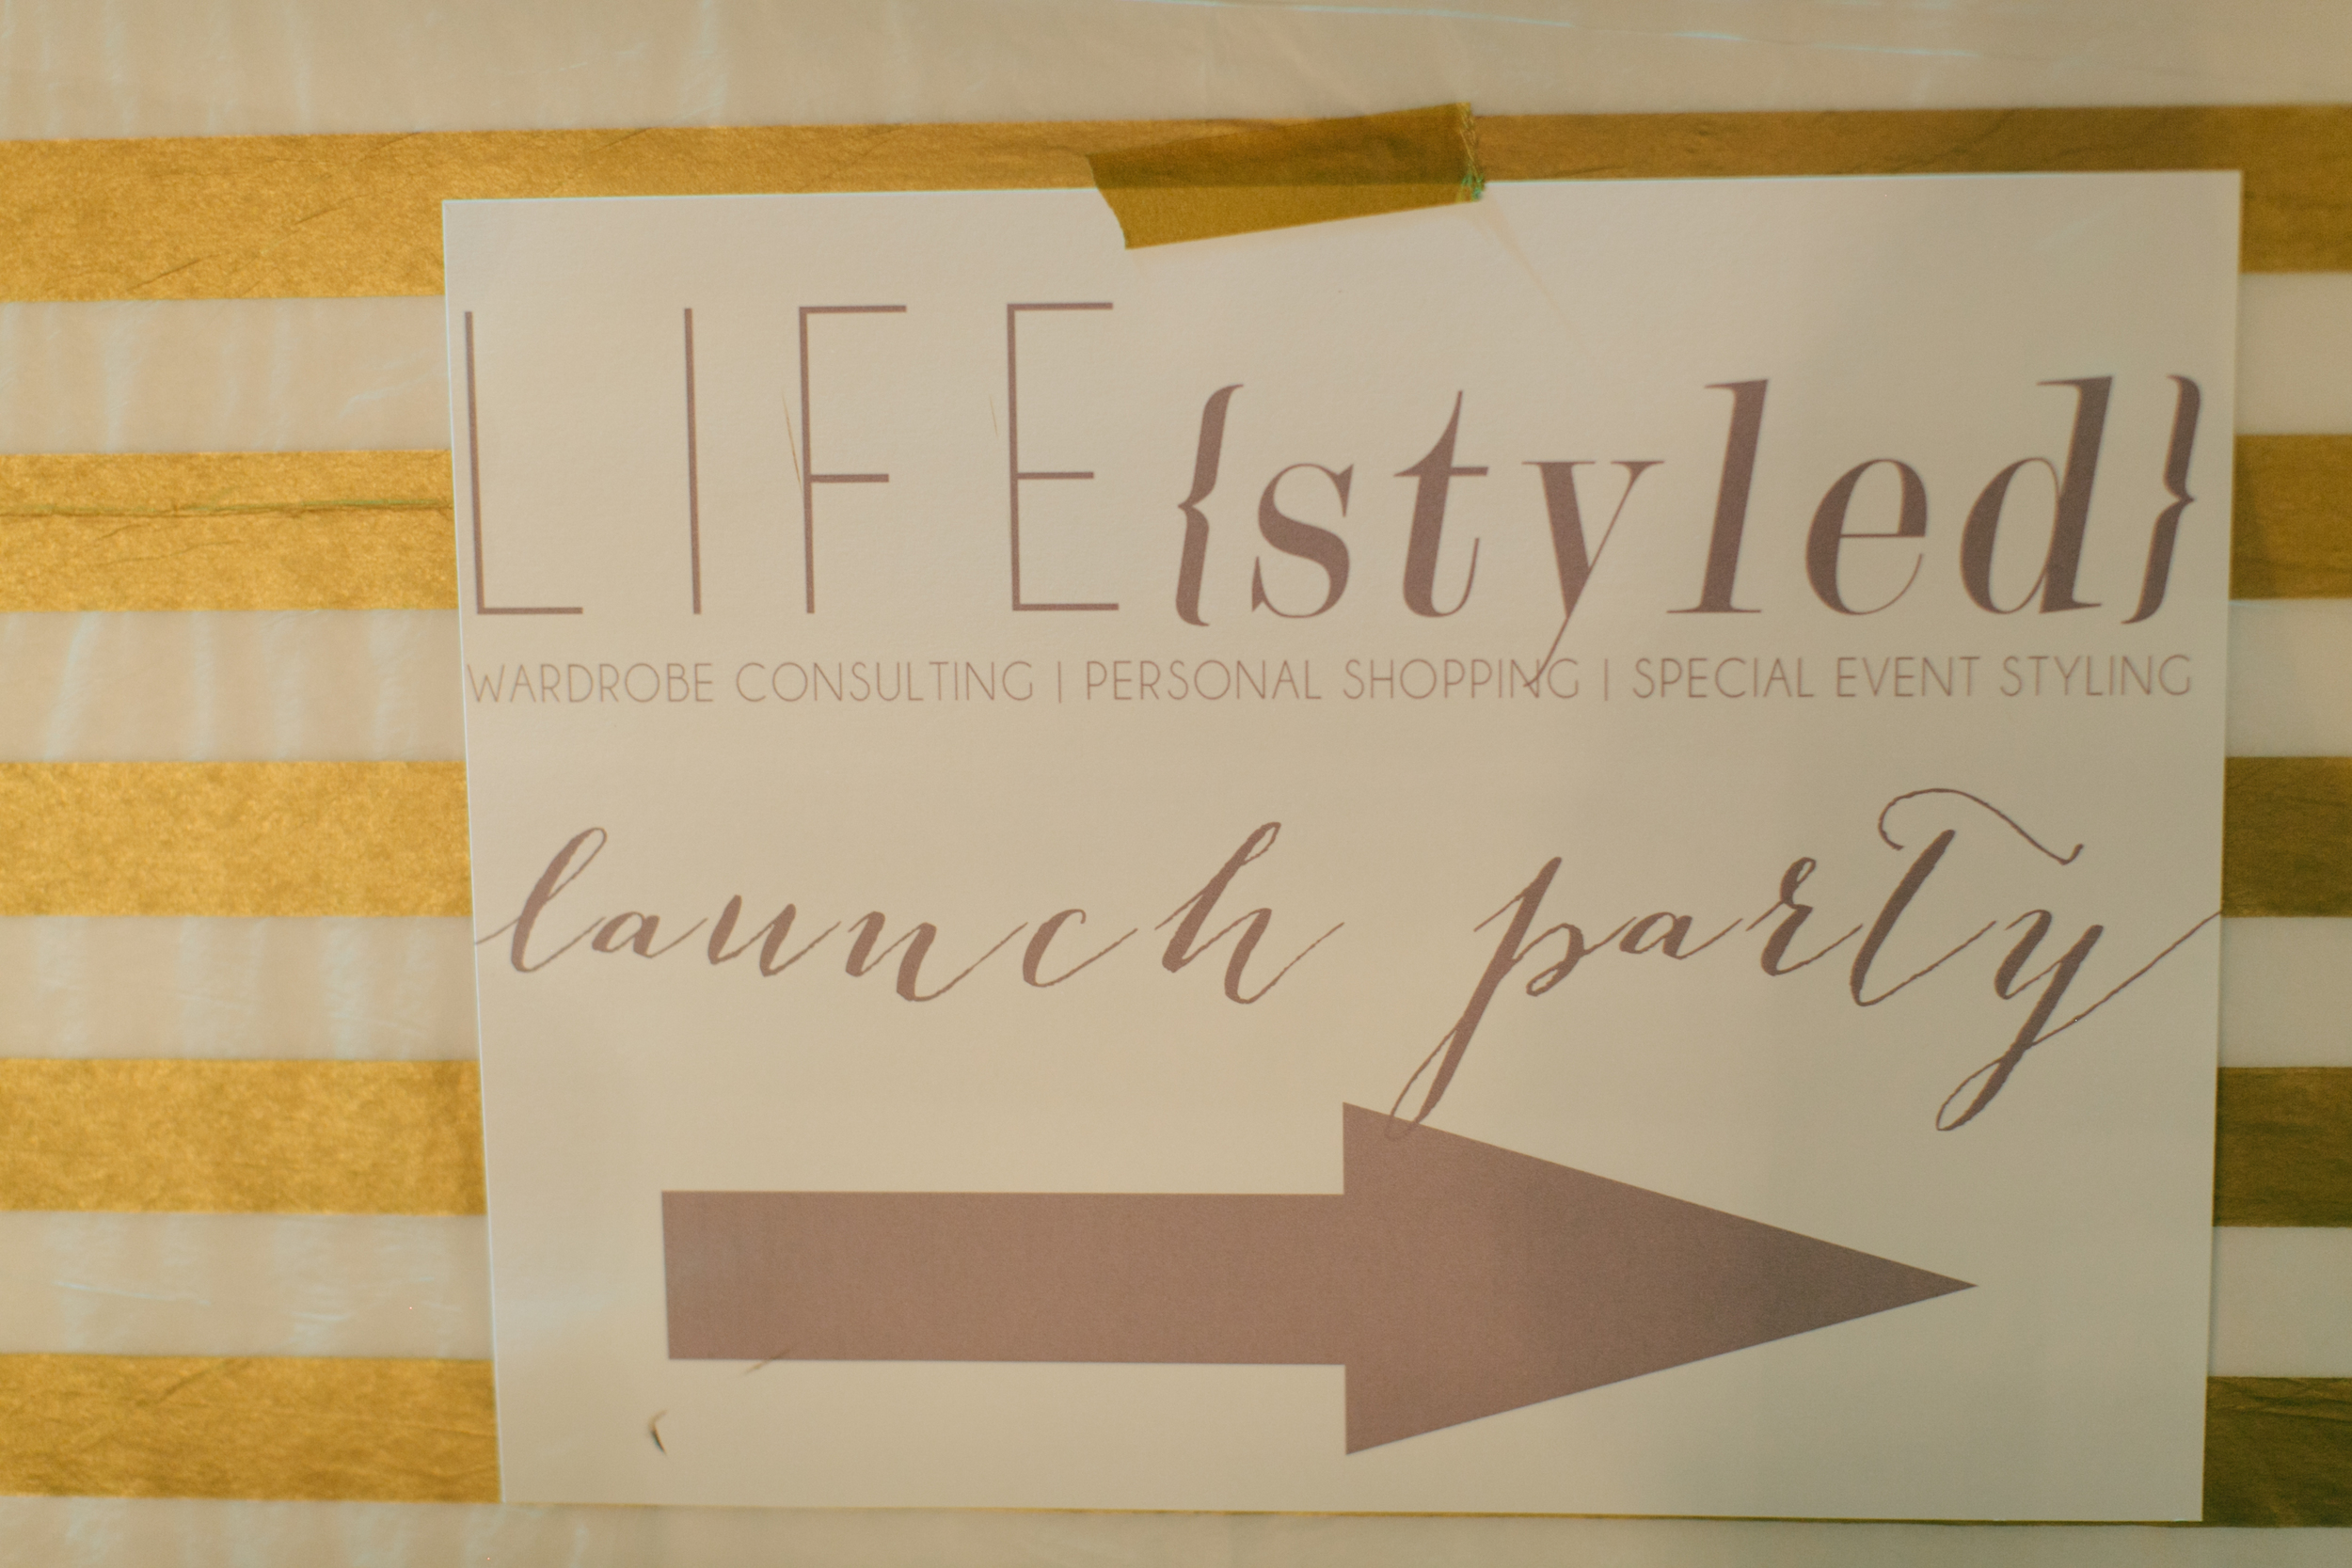 Kathryn-McCrary-Photography-LifeStyled-Launch-Party-33.jpg